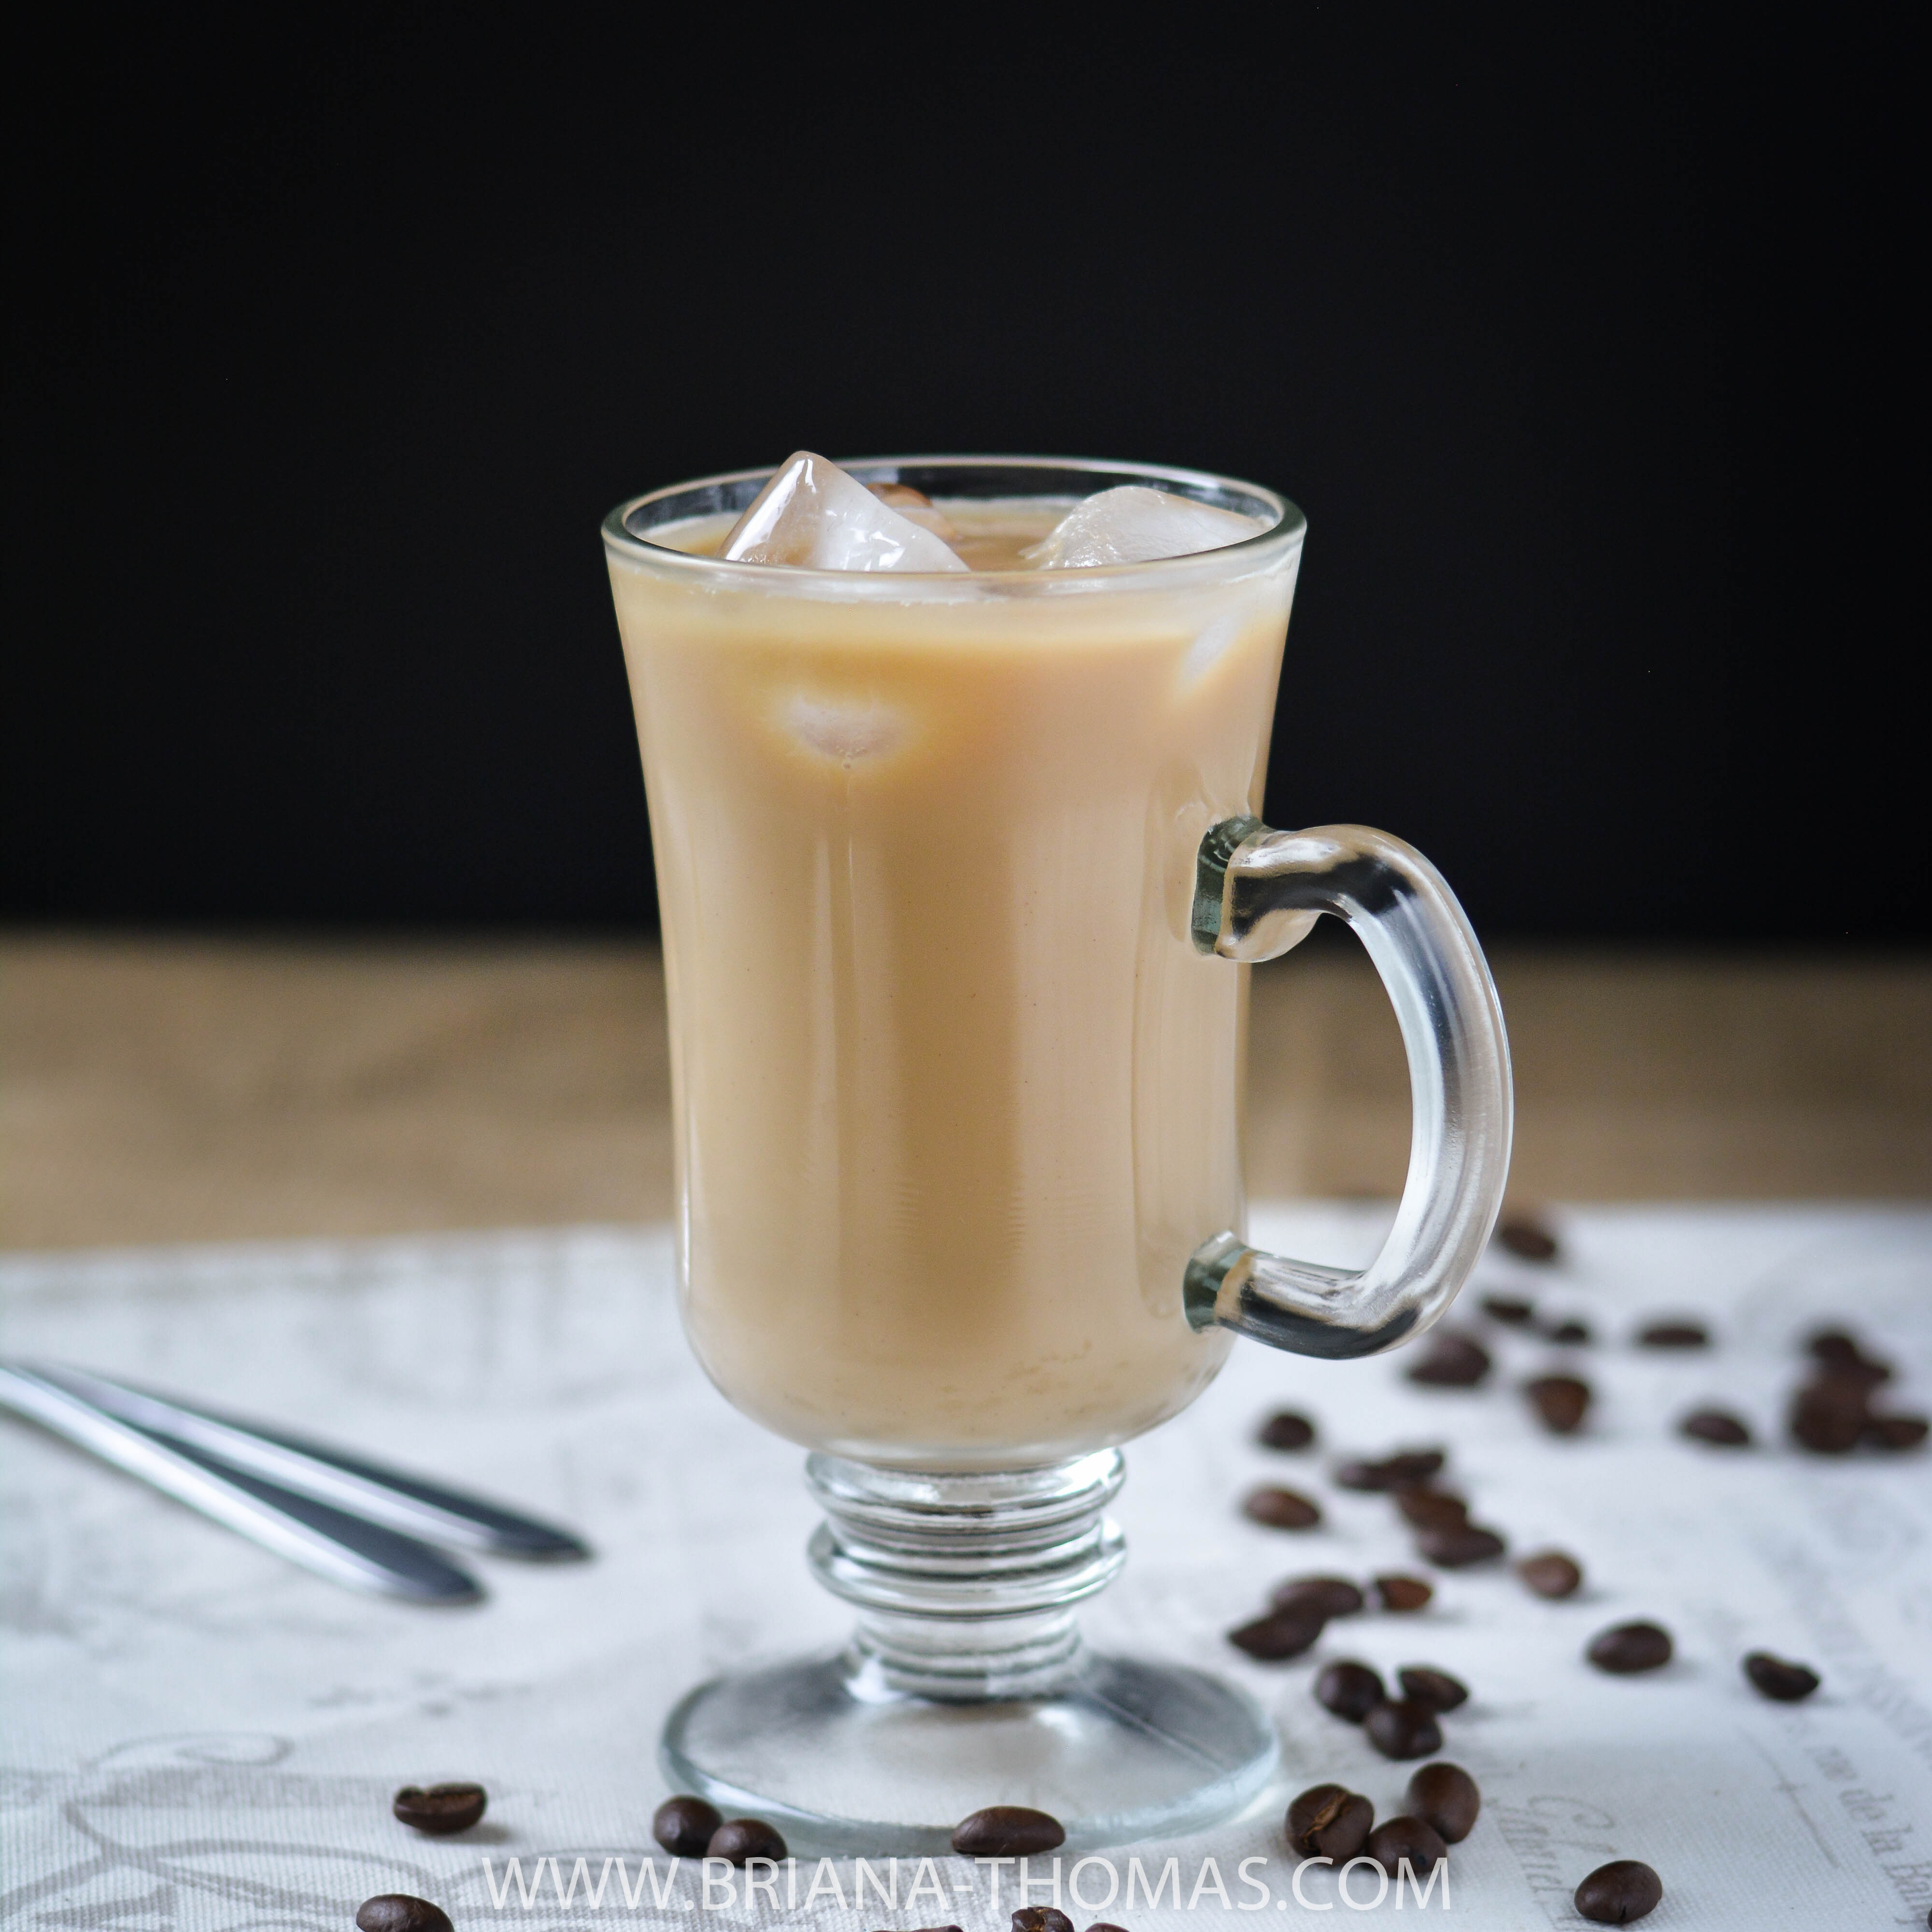 This Refrigerator Iced Coffee is a healthy grab-and-go solution to your iced coffee habits! THM Fuel Pull, low carb, low fat, allergy friendly options